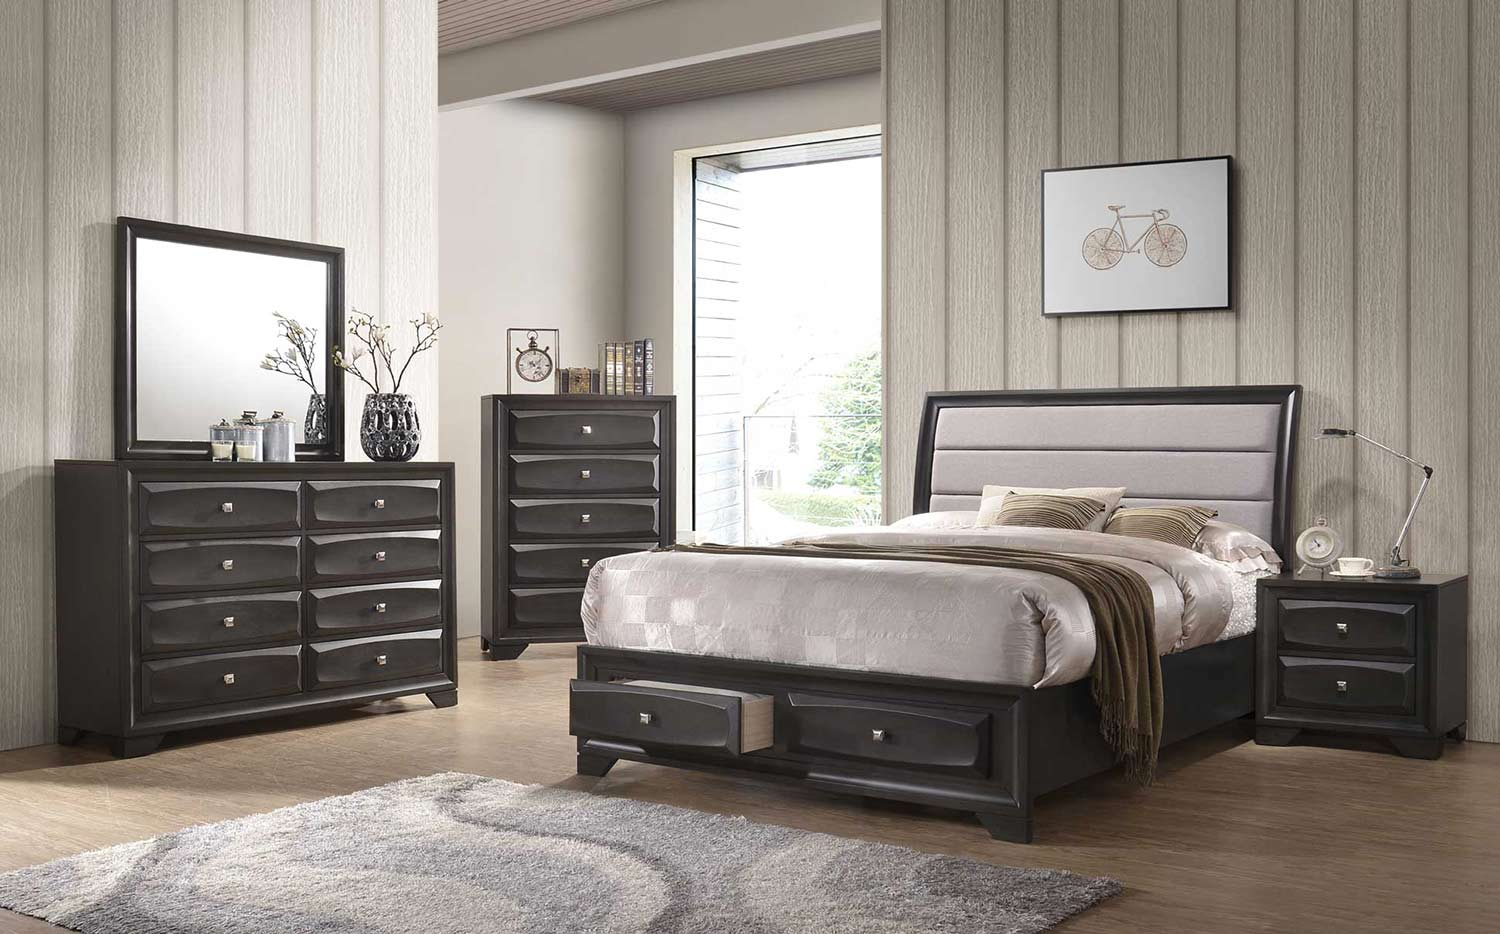 Acme Soteris Bedroom Set with Storage - Gray Fabric/Antique Gray